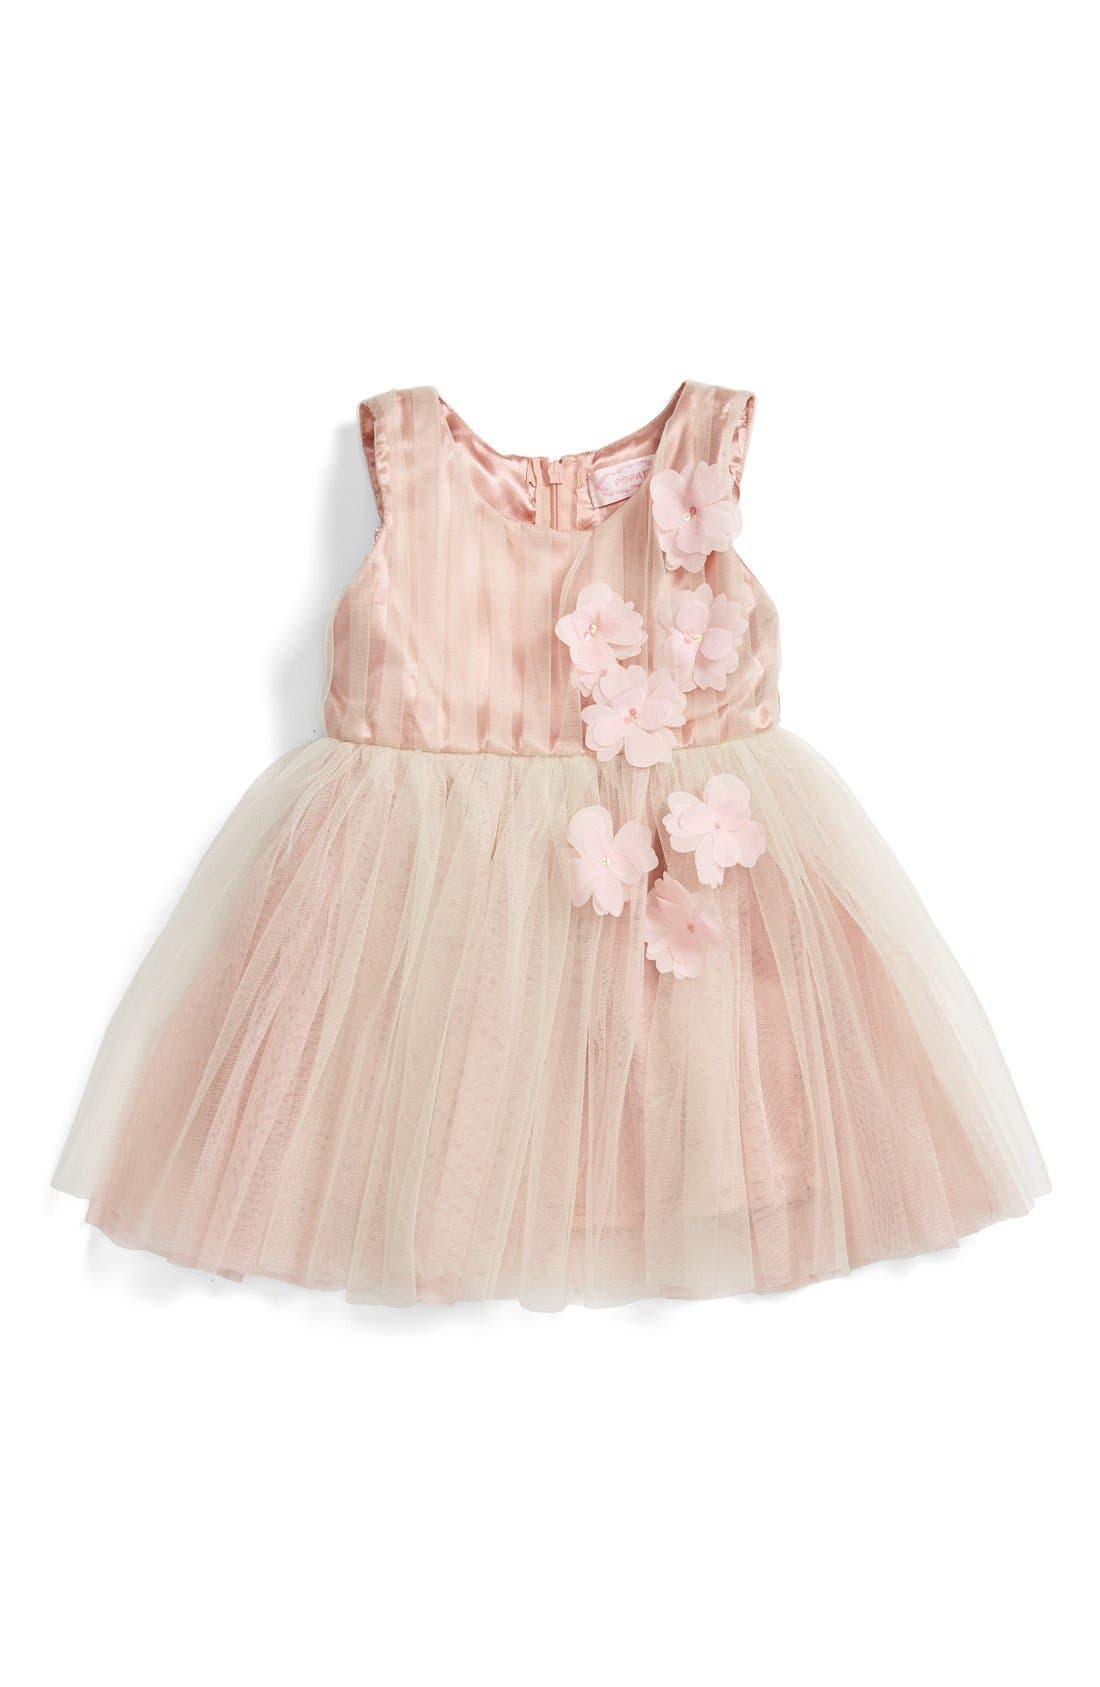 Sleeveless Rosette Tulle Dress,                             Main thumbnail 1, color,                             251